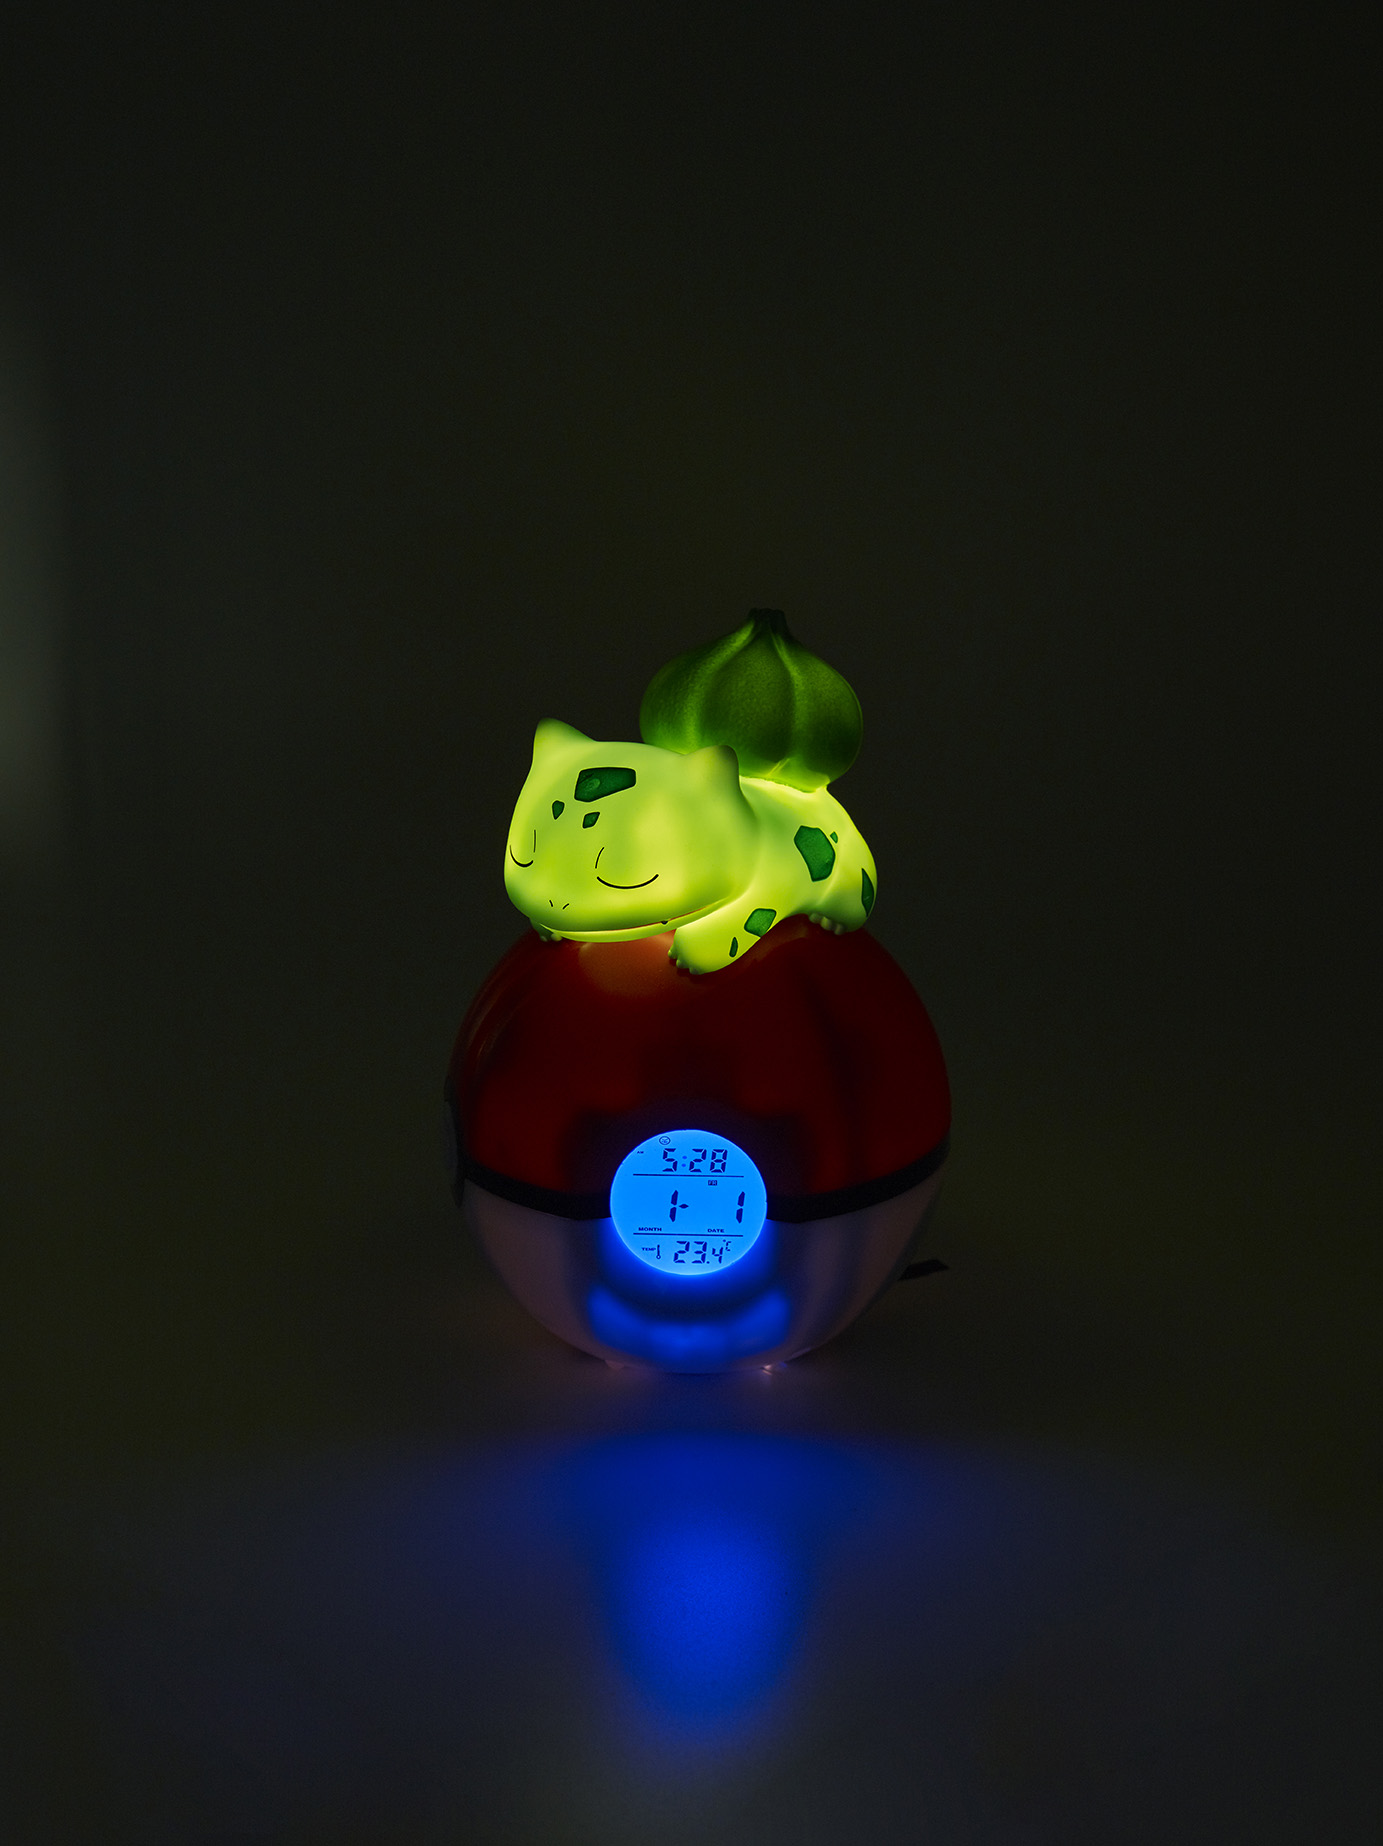 Pokémon Bulbasaur Light-up 3D figure FM Alarm Clock 3